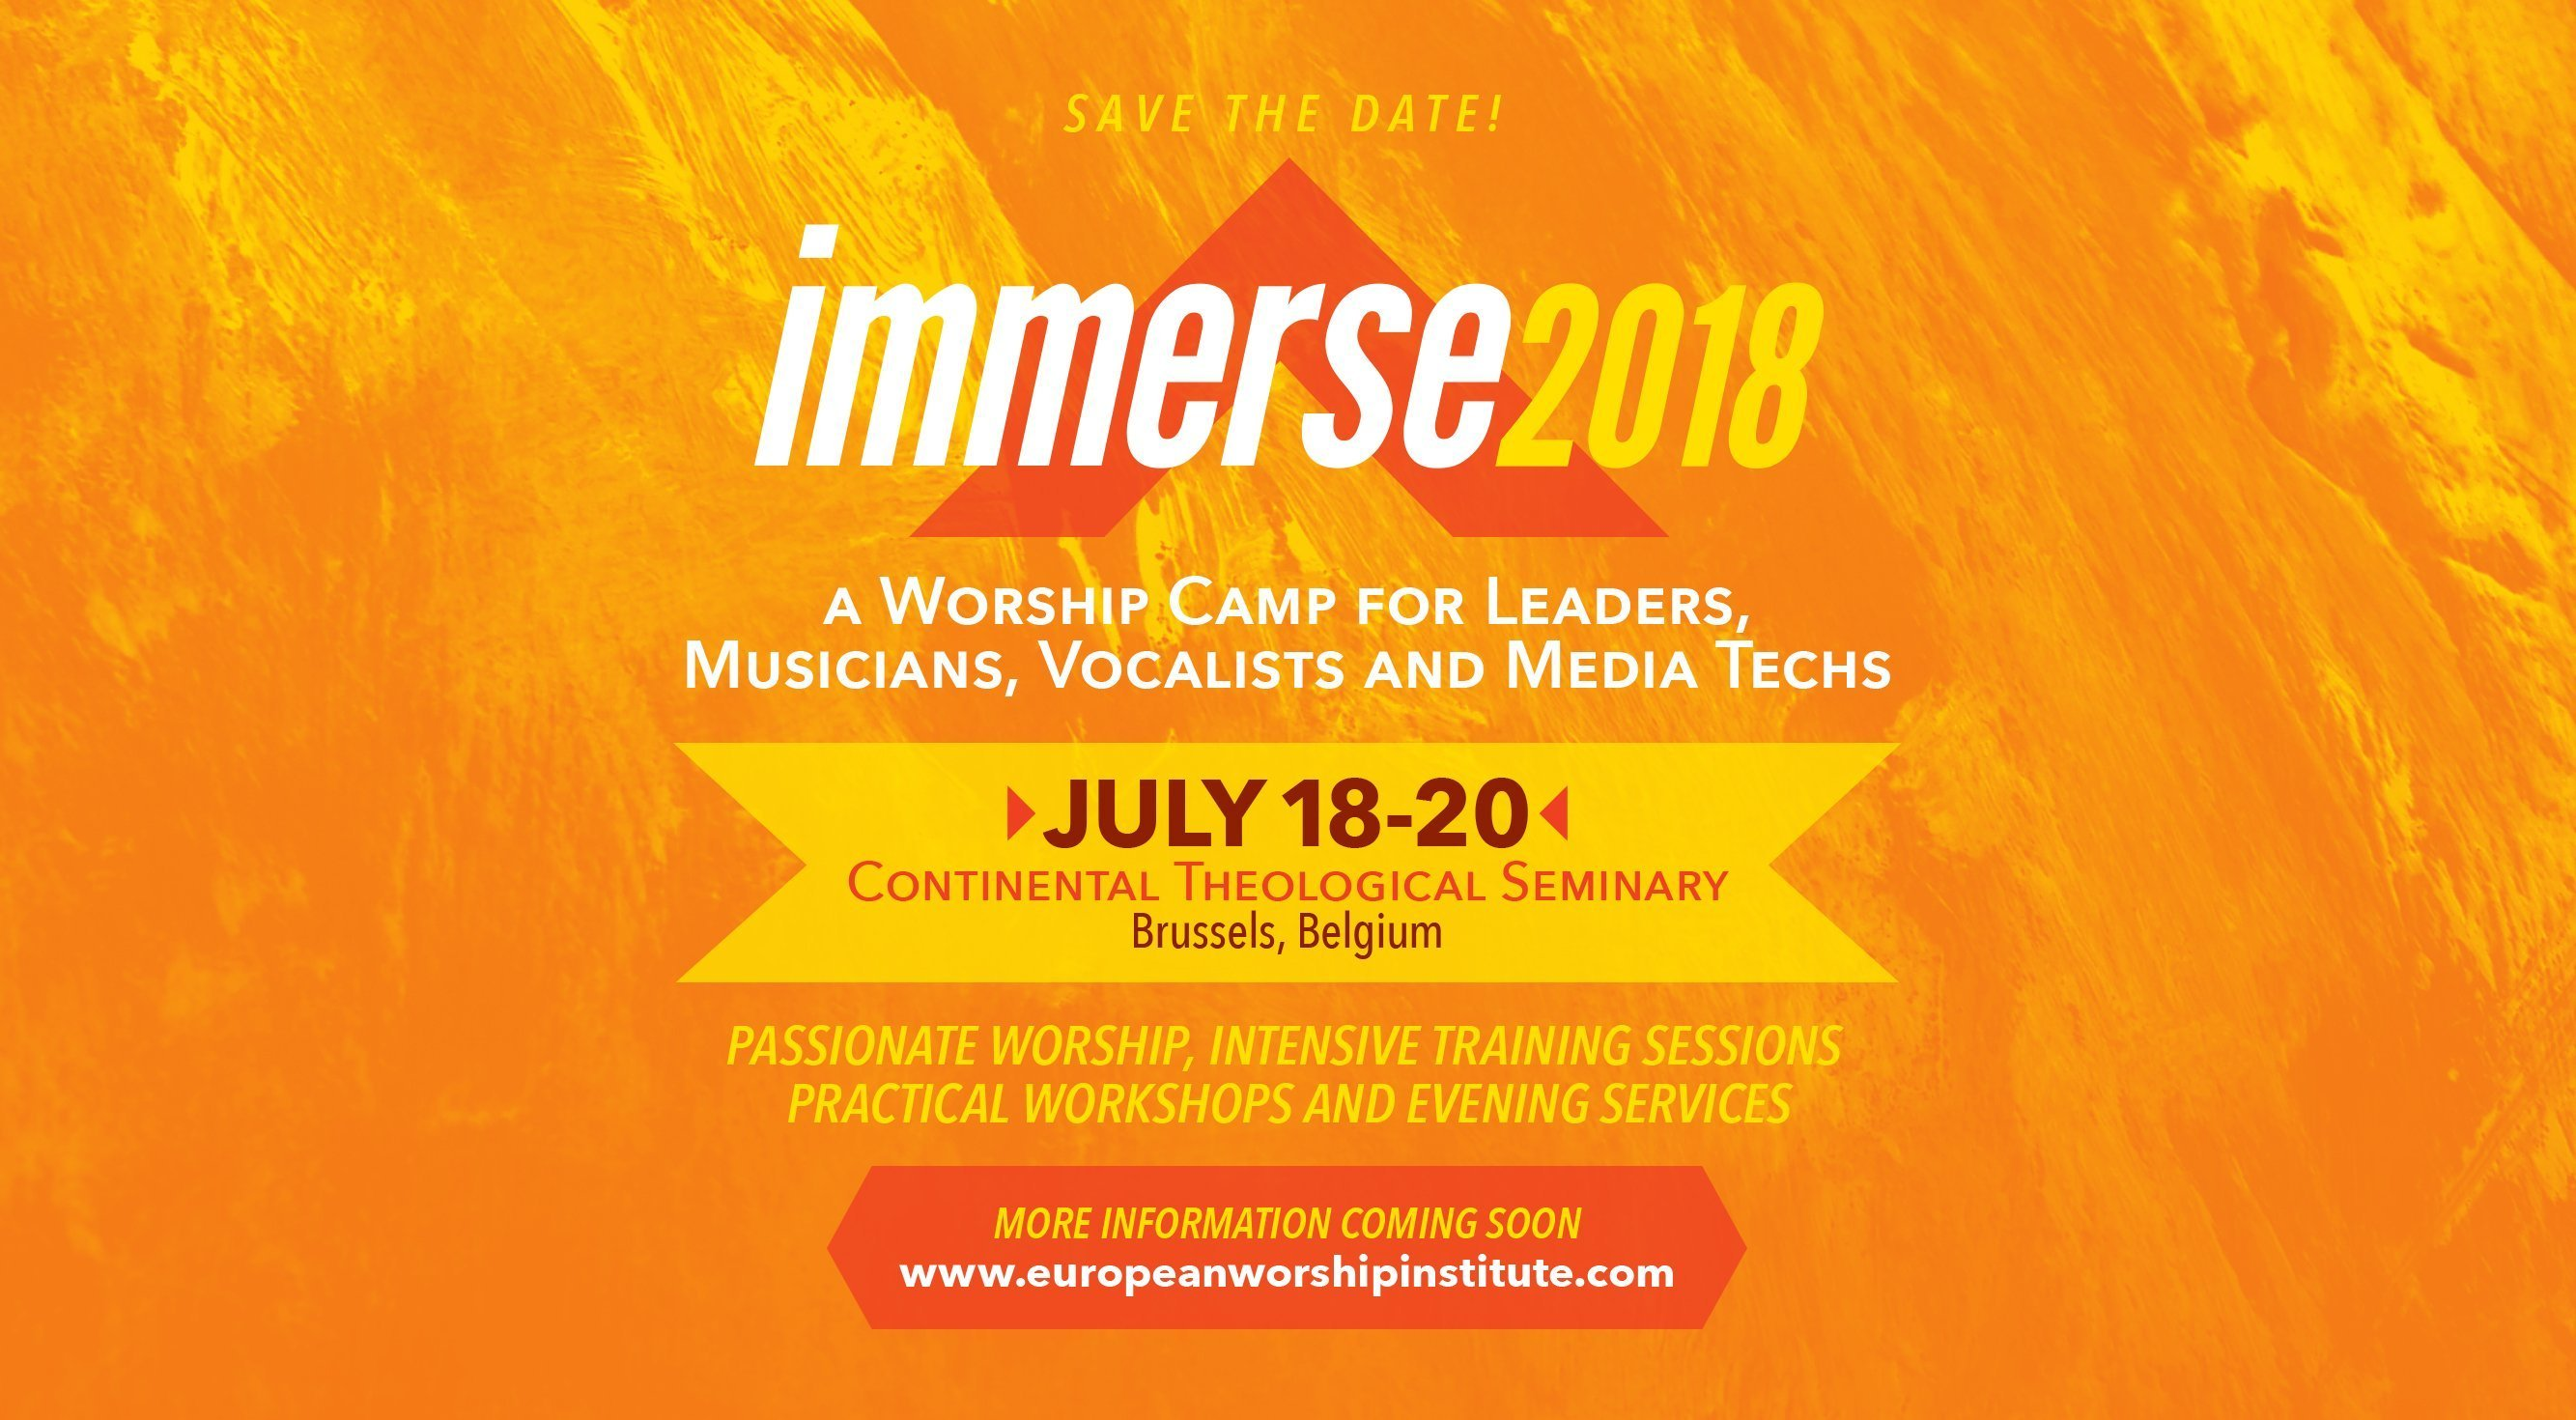 Immerse Brussels 2018